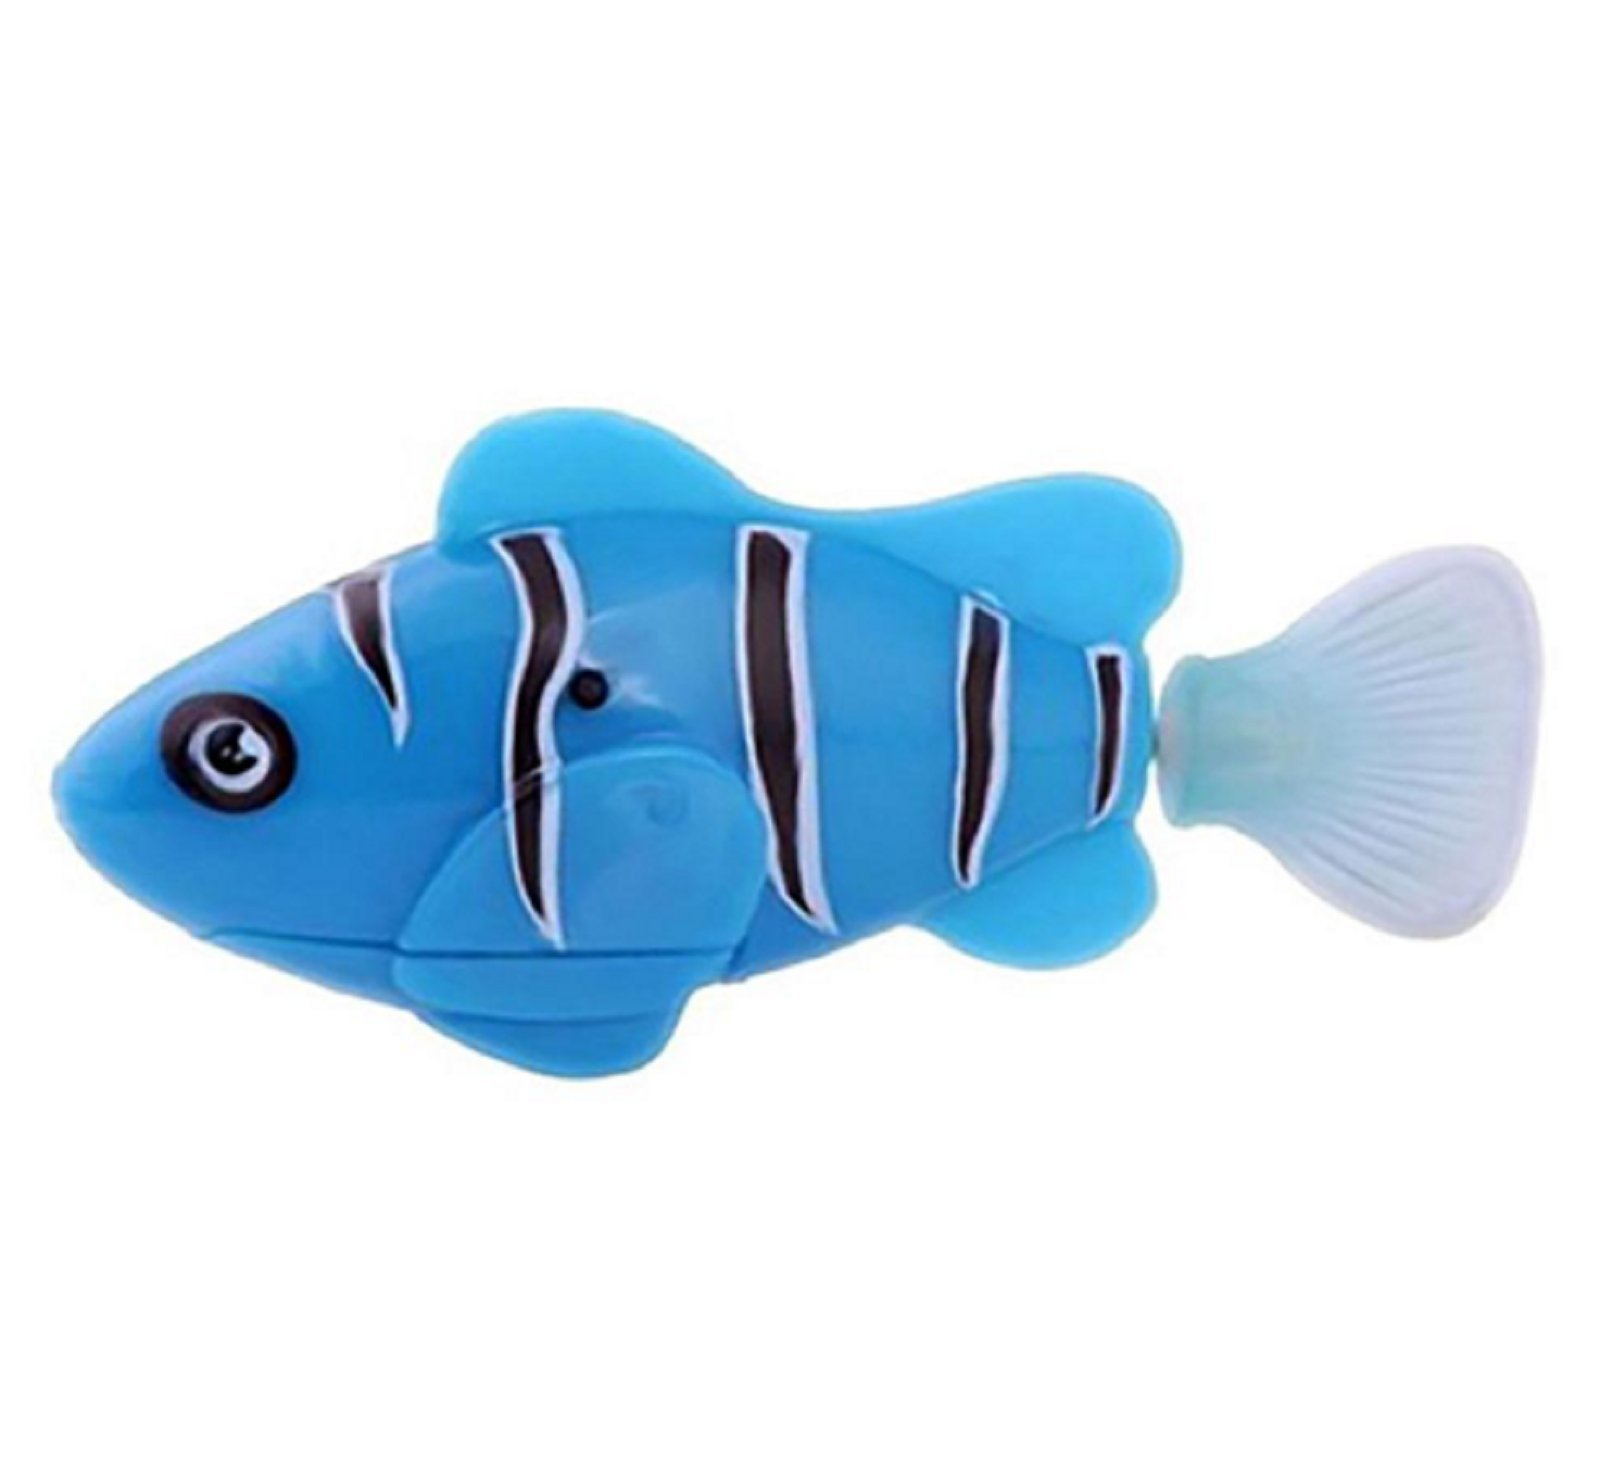 New Arrival Funny Swim Electronic Robofish Activated Battery Powered Robo Toy fish Robotic Pet for Fishing Tank Decorating Fish (Blue Color)